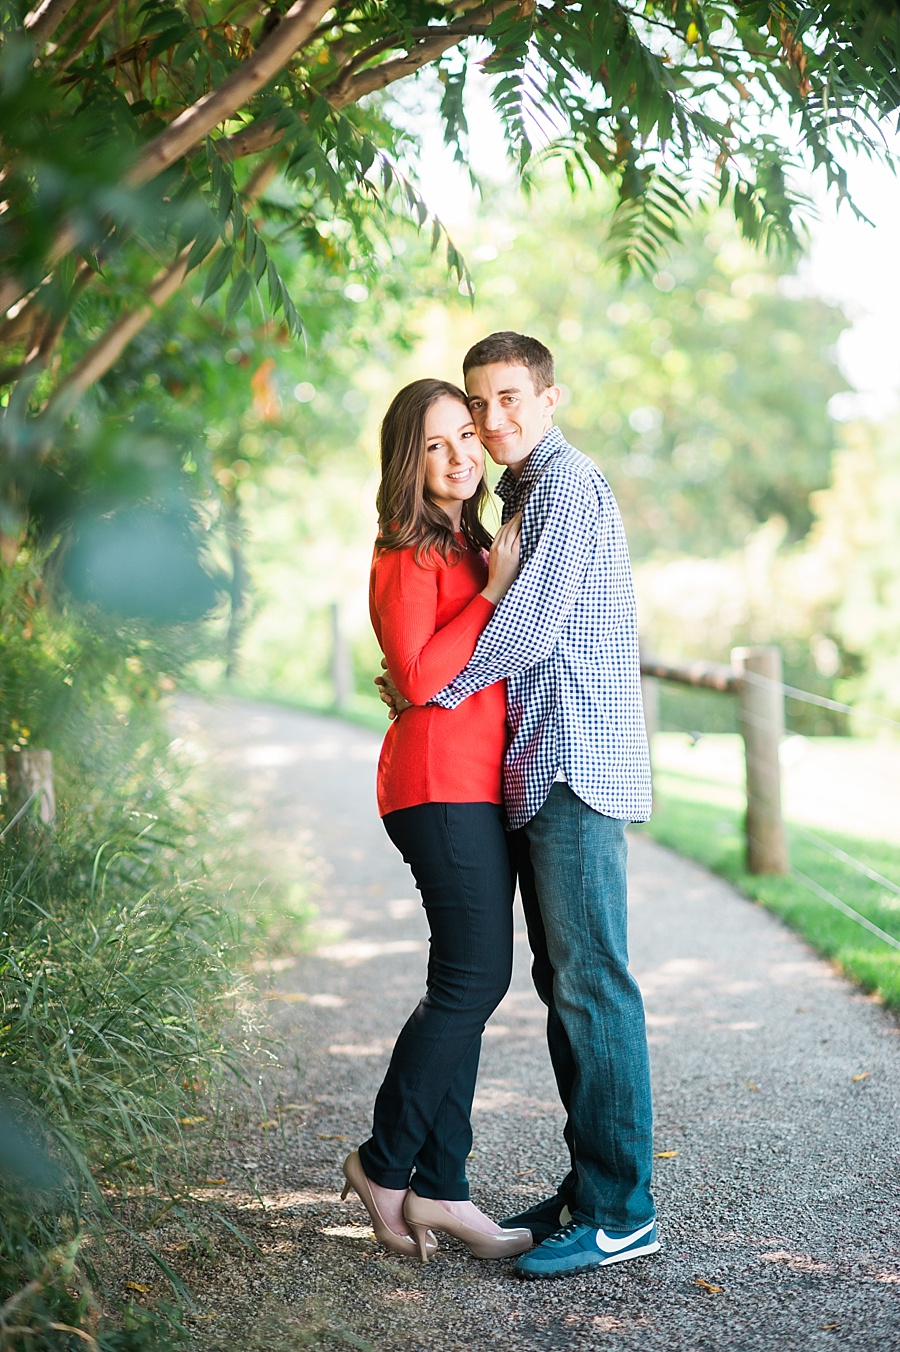 Brooklyn_NYC_Engagement_Session_BJ_0027.jpg